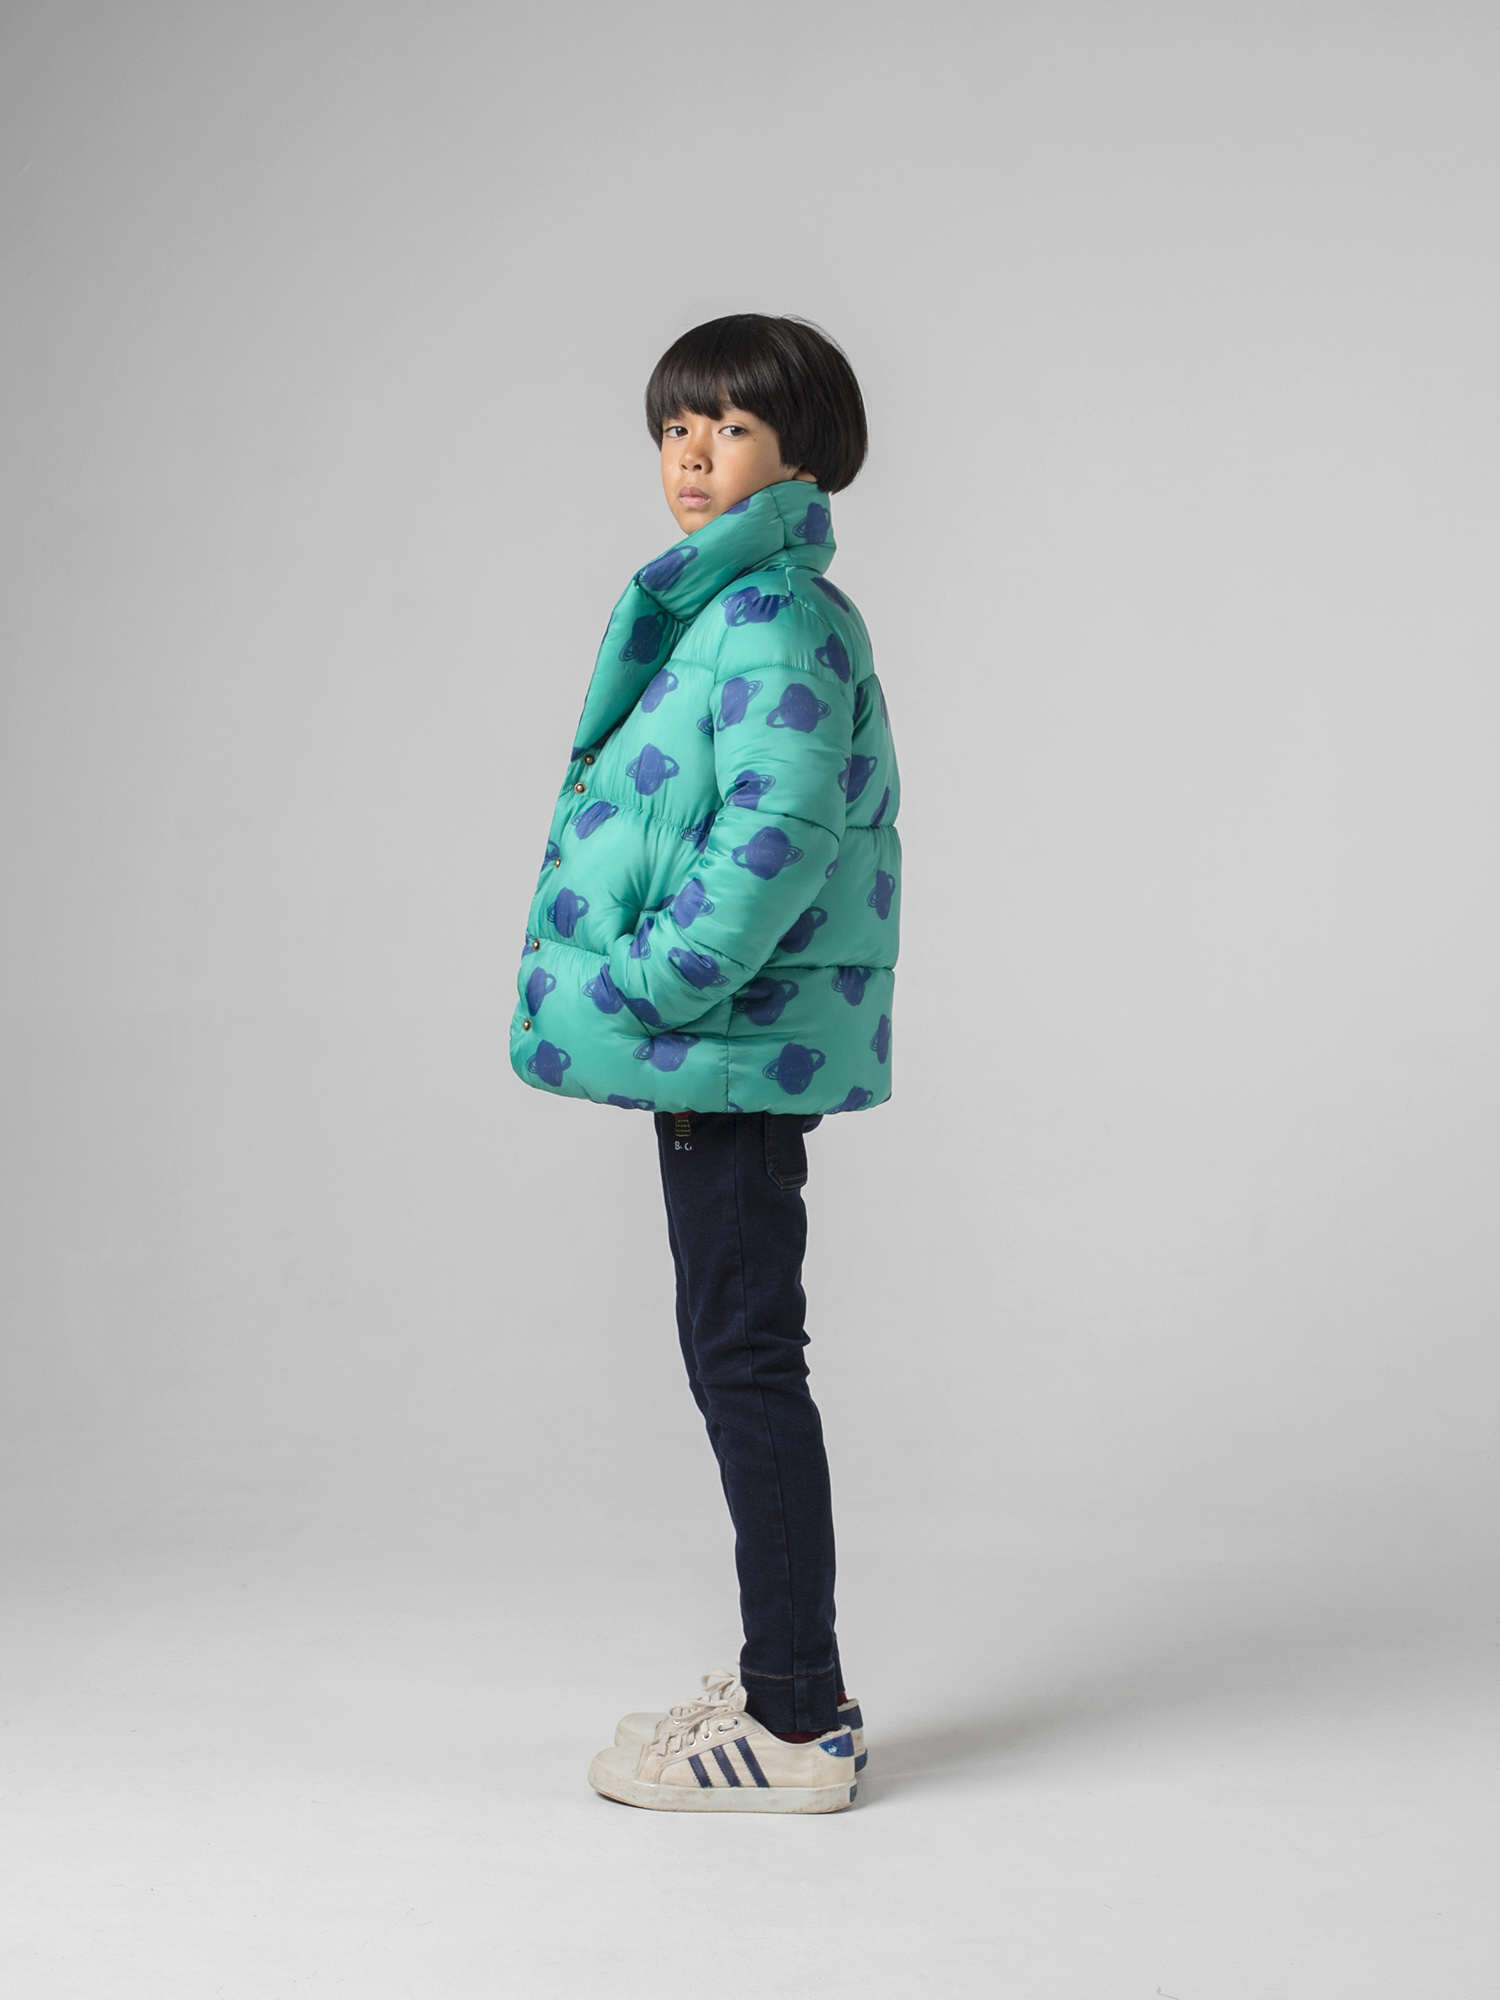 WE COSMOS AW1920 BY BOBO CHOSES